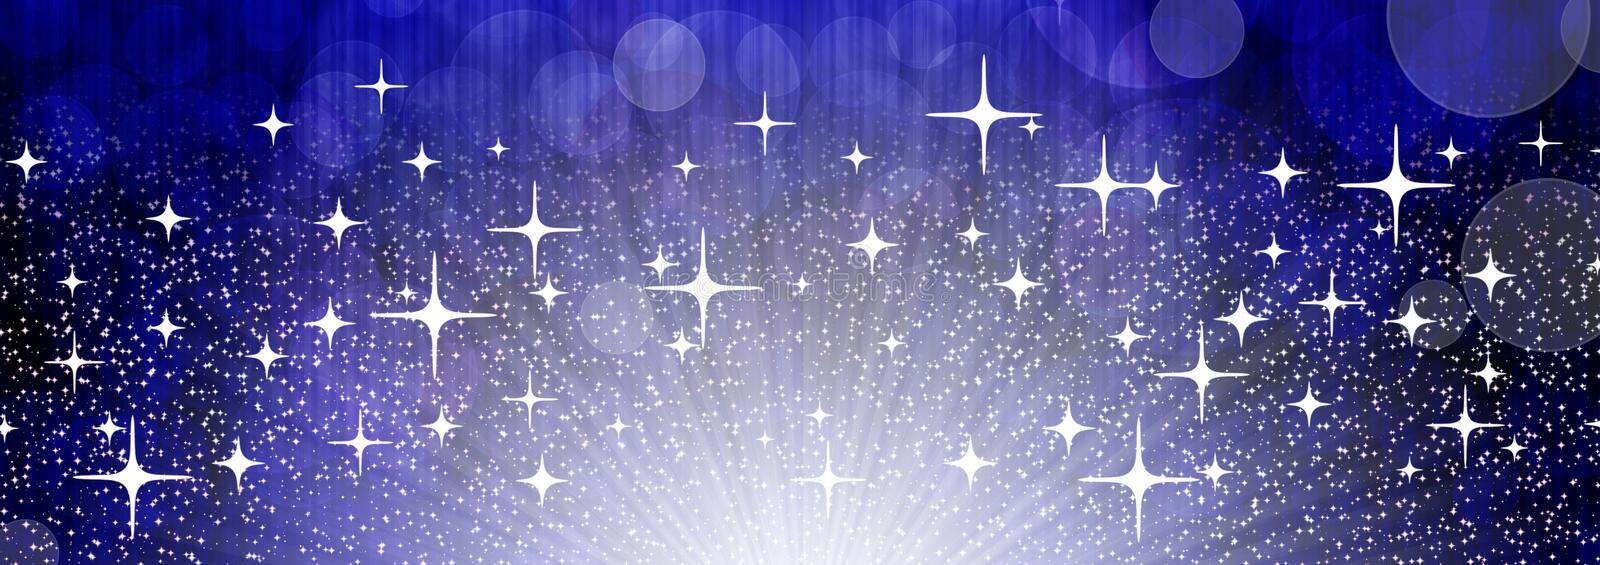 Universe banner stock photography